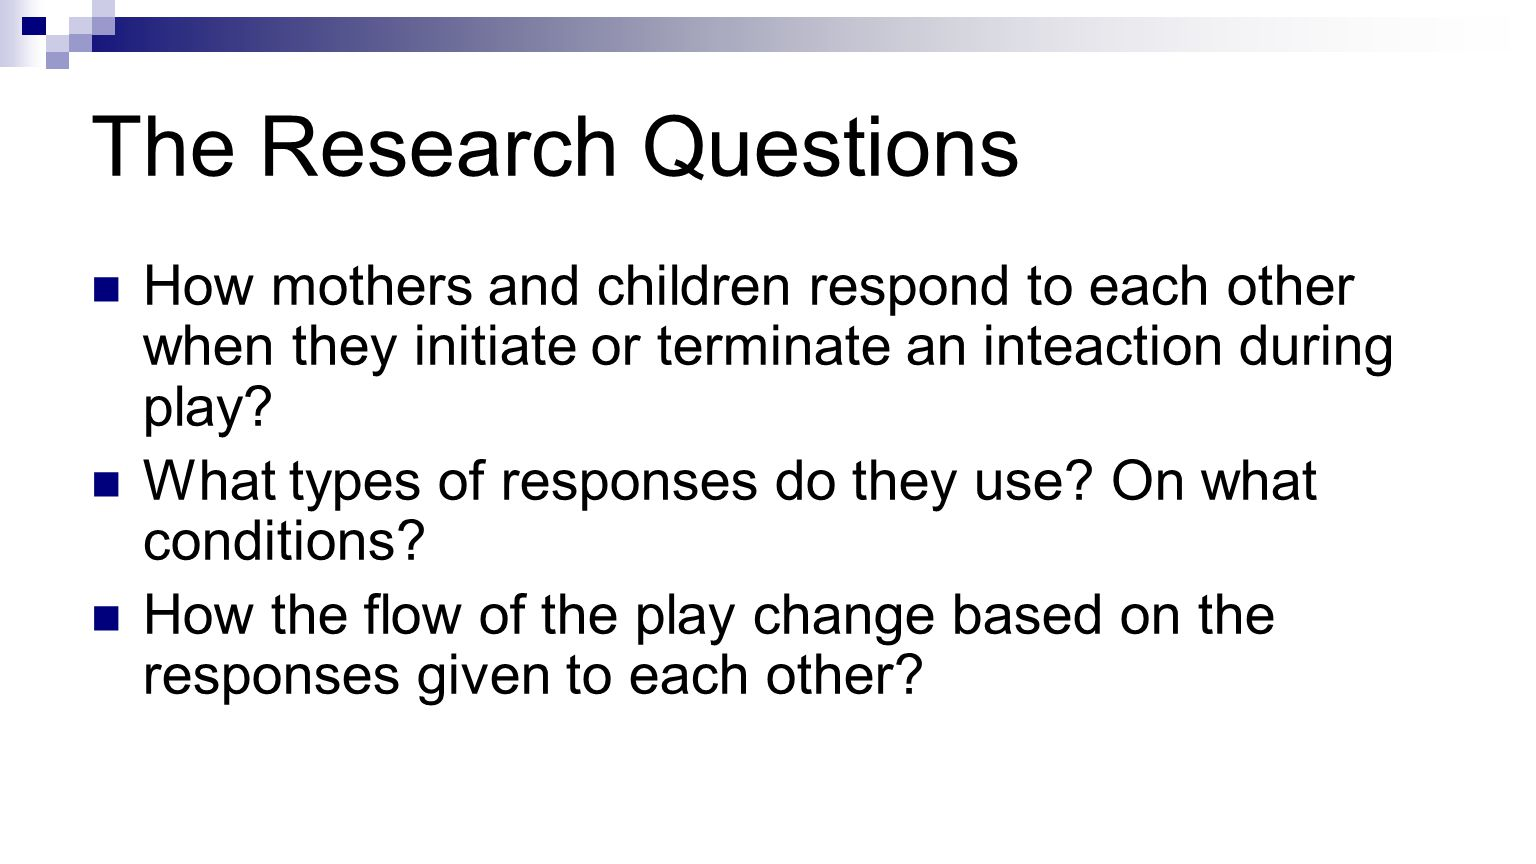 The Research Questions How mothers and children respond to each other when they initiate or terminate an inteaction during play.